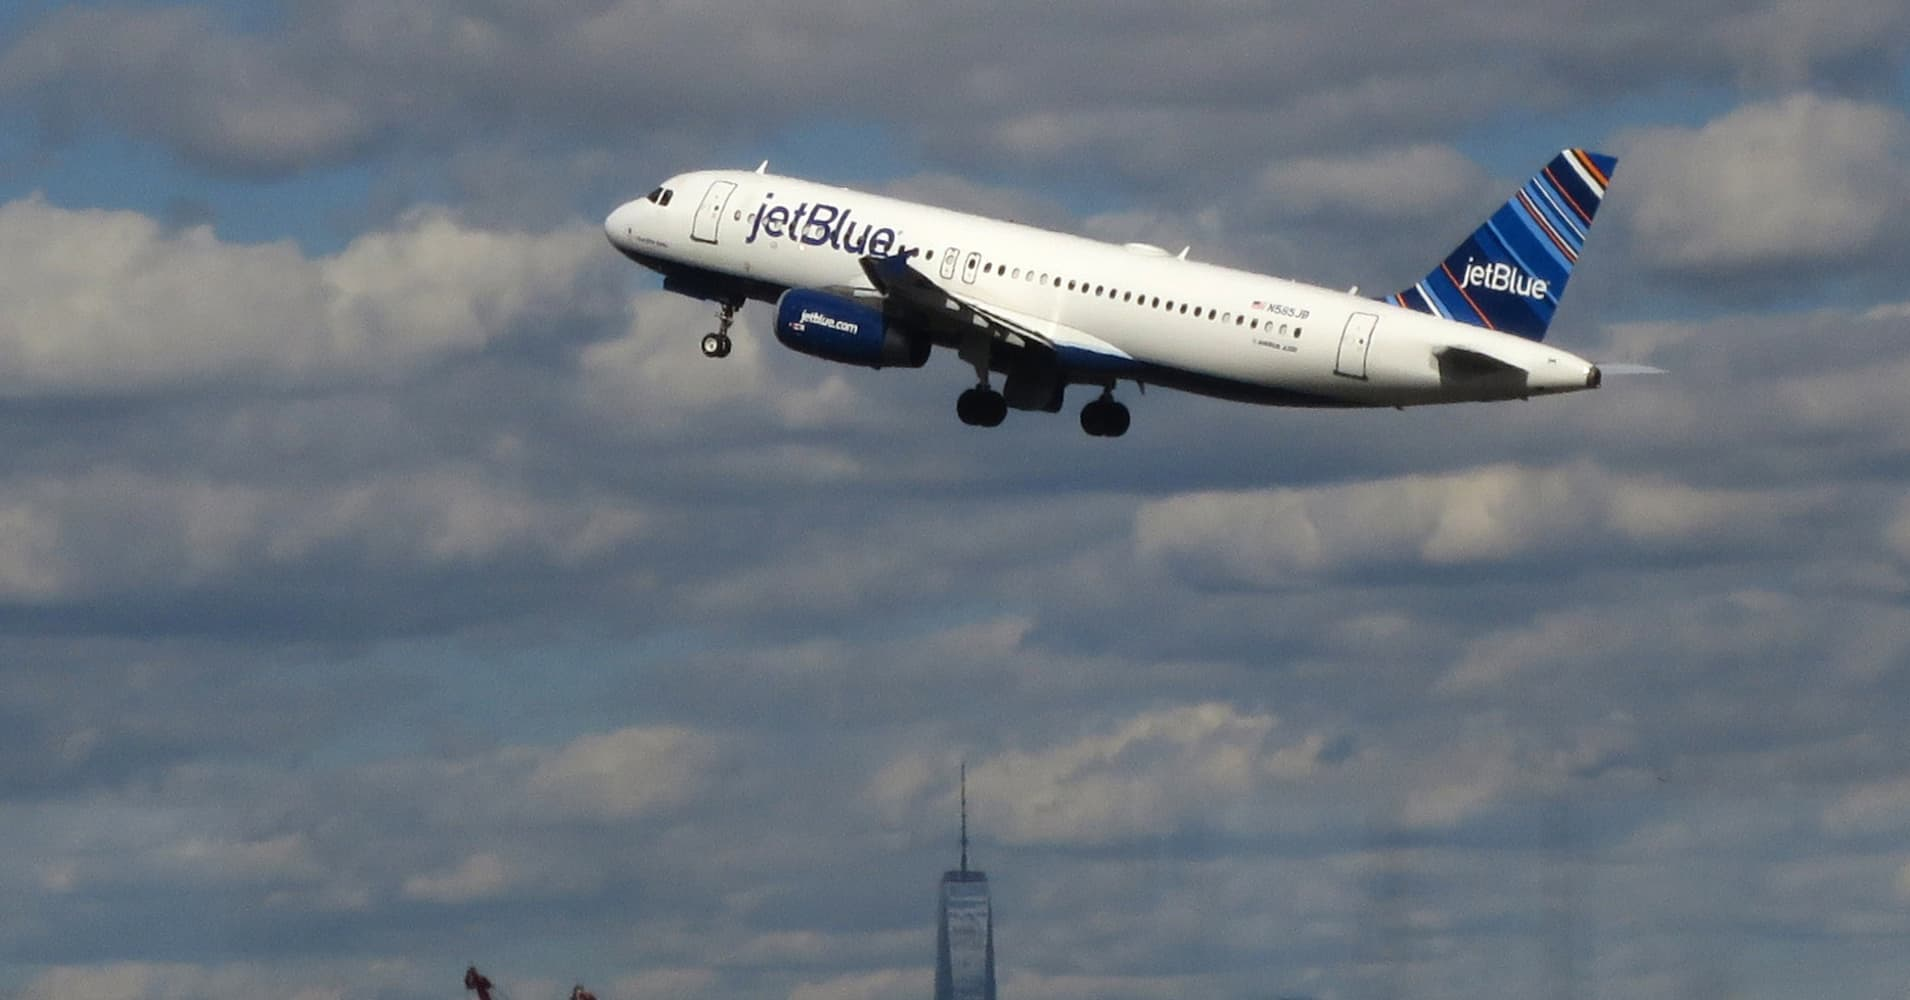 A jetBlue airplane flies over New York's Lower Manhattan as it takes off from Newark Liberty International Airport in Newark, New Jersey.